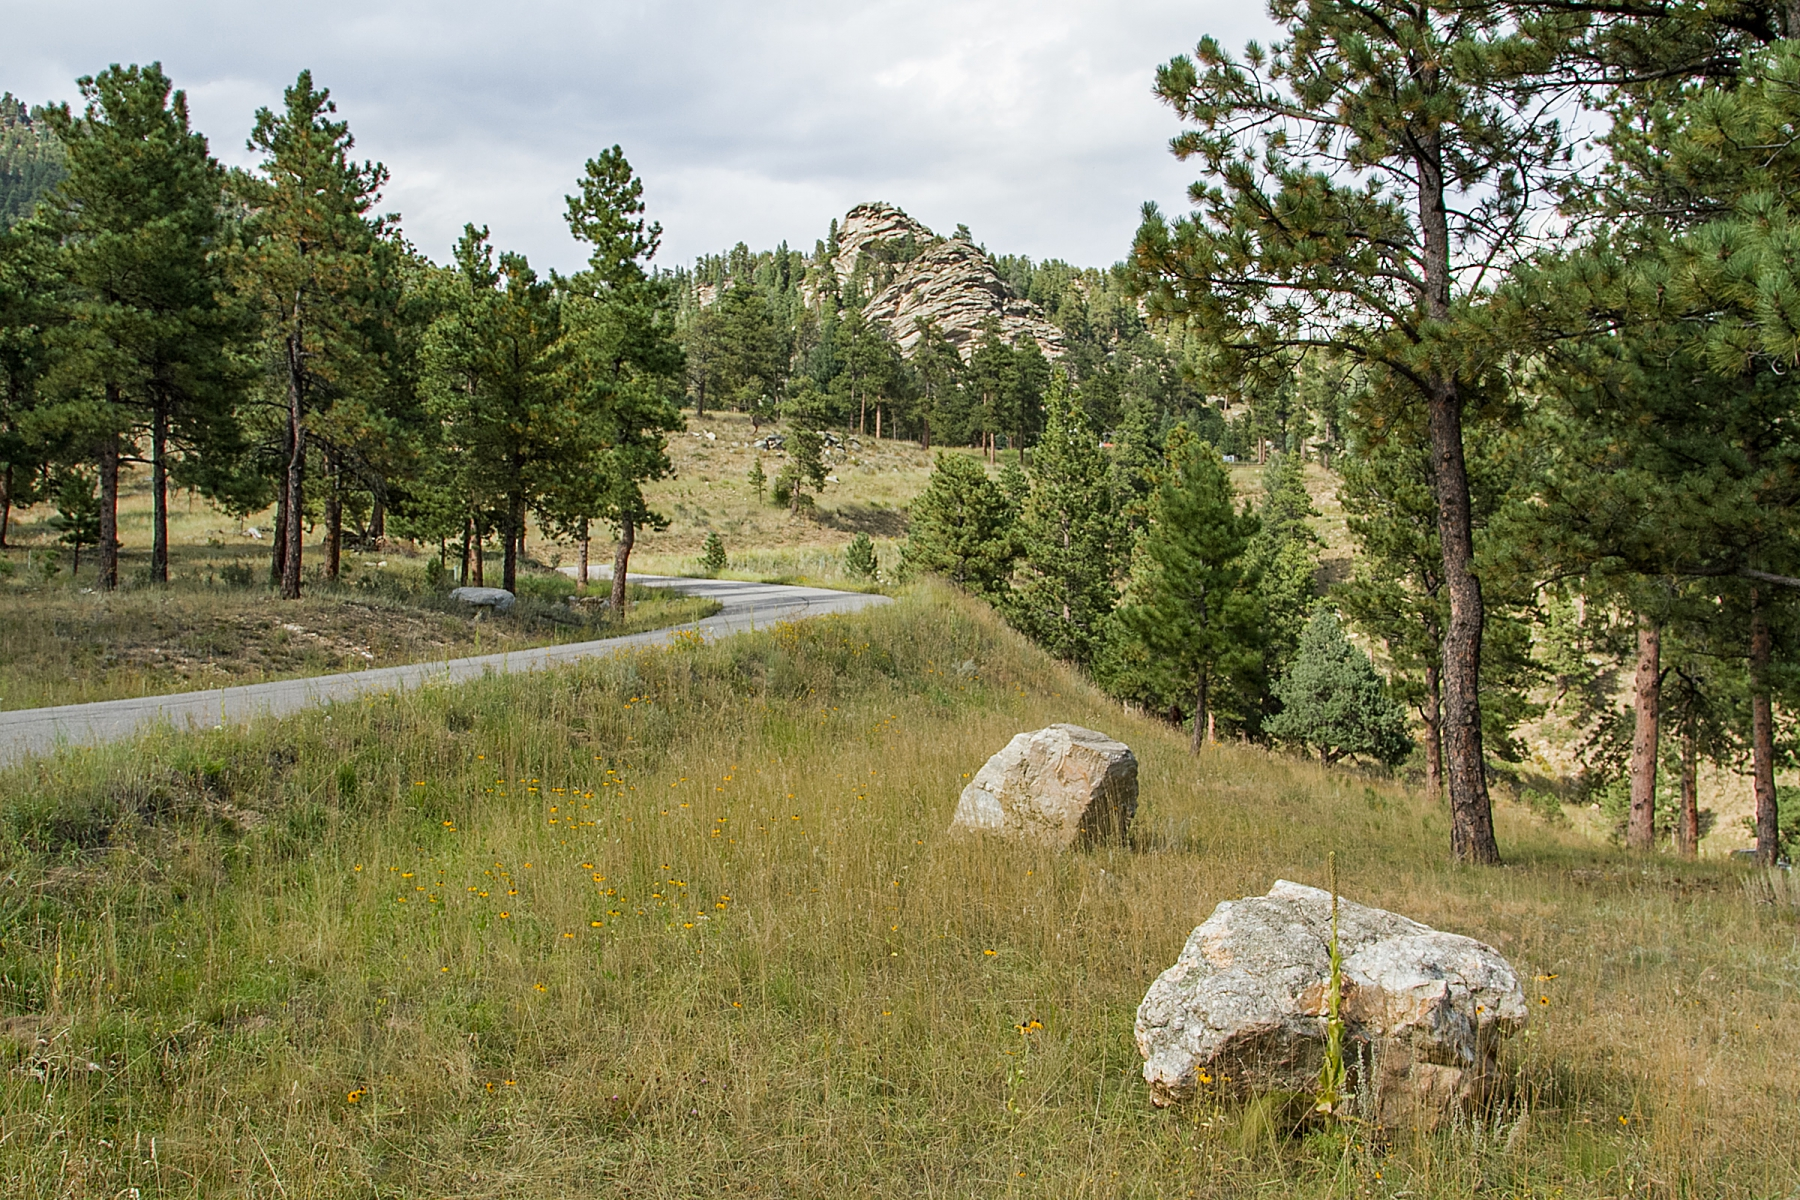 Property for Active at 123 Fox Ridge Drive 123 Fox Ridge Drive Evergreen, Colorado 80439 United States